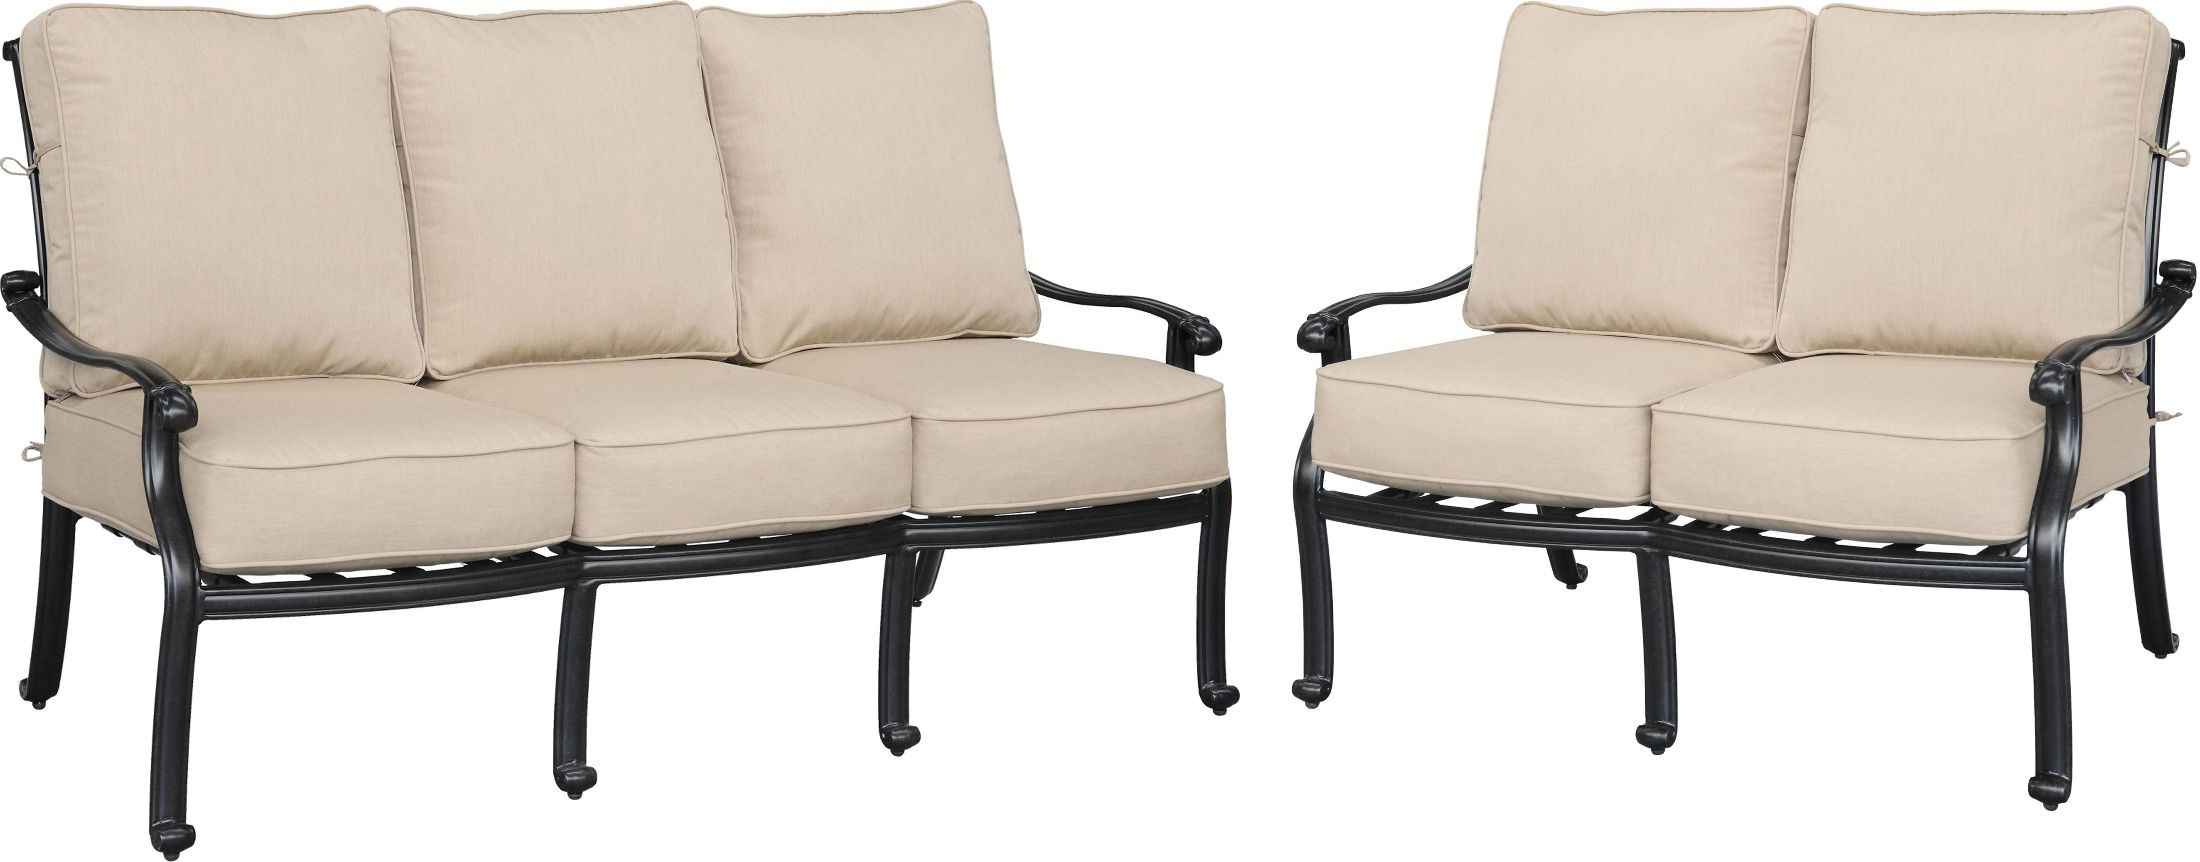 sunbrella living room furniture versailles sunbrella onyx outdoor living room set ou1045 14323